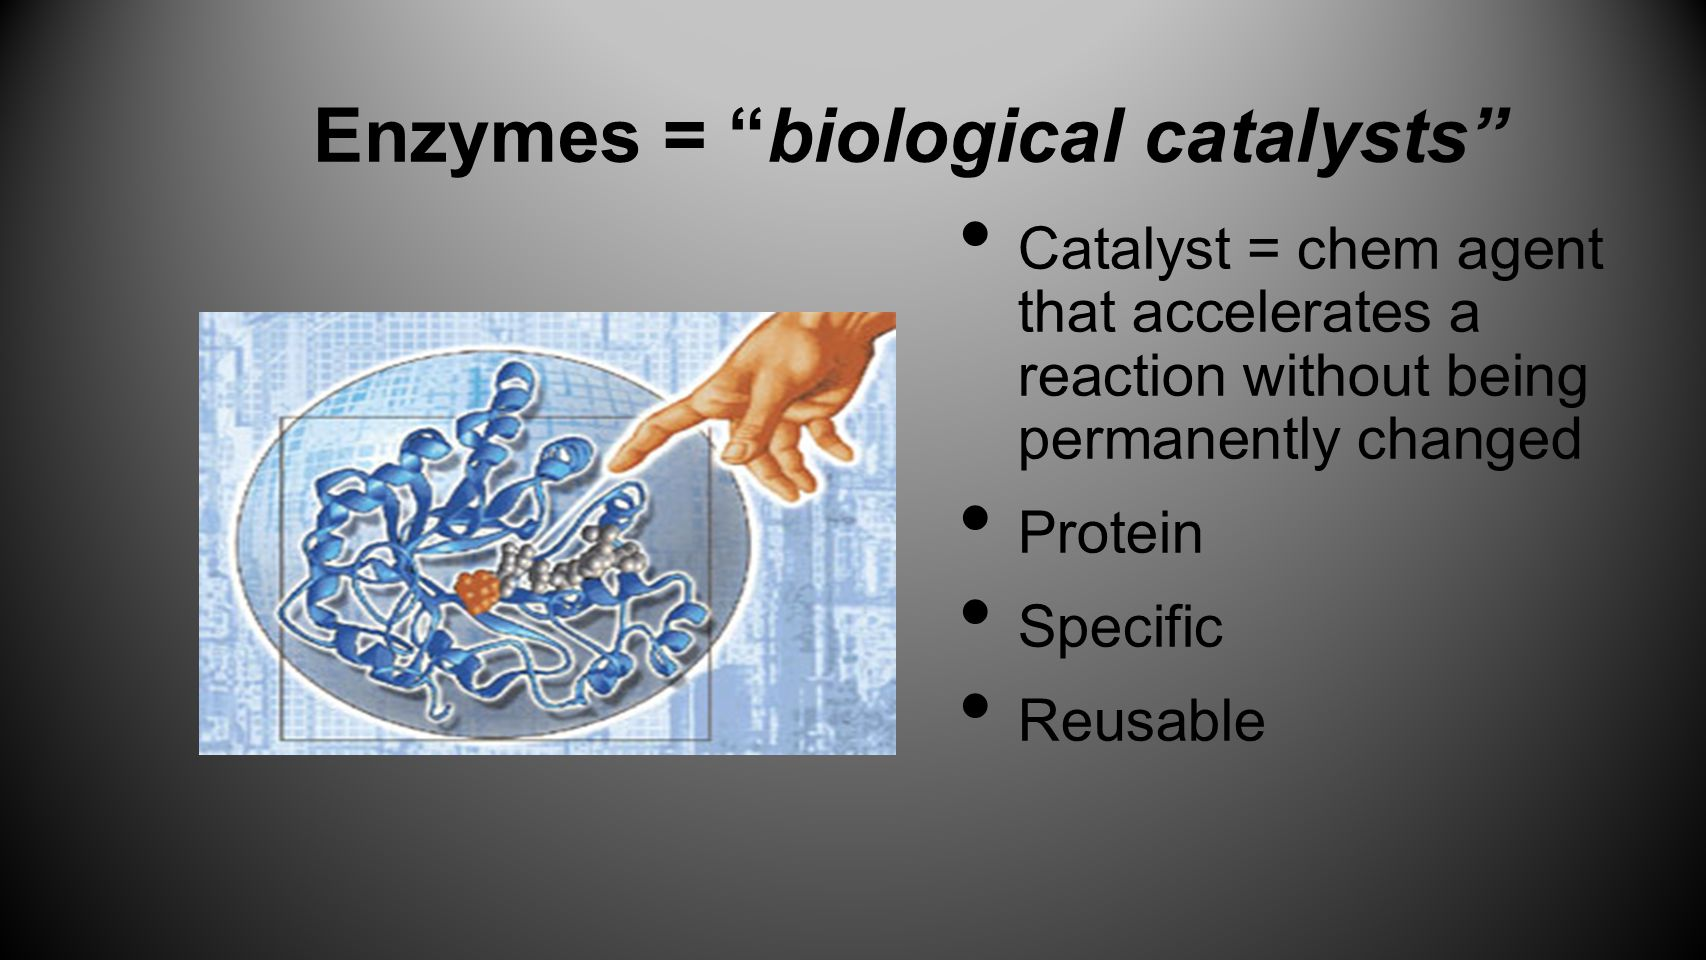 Enzymes = biological catalysts